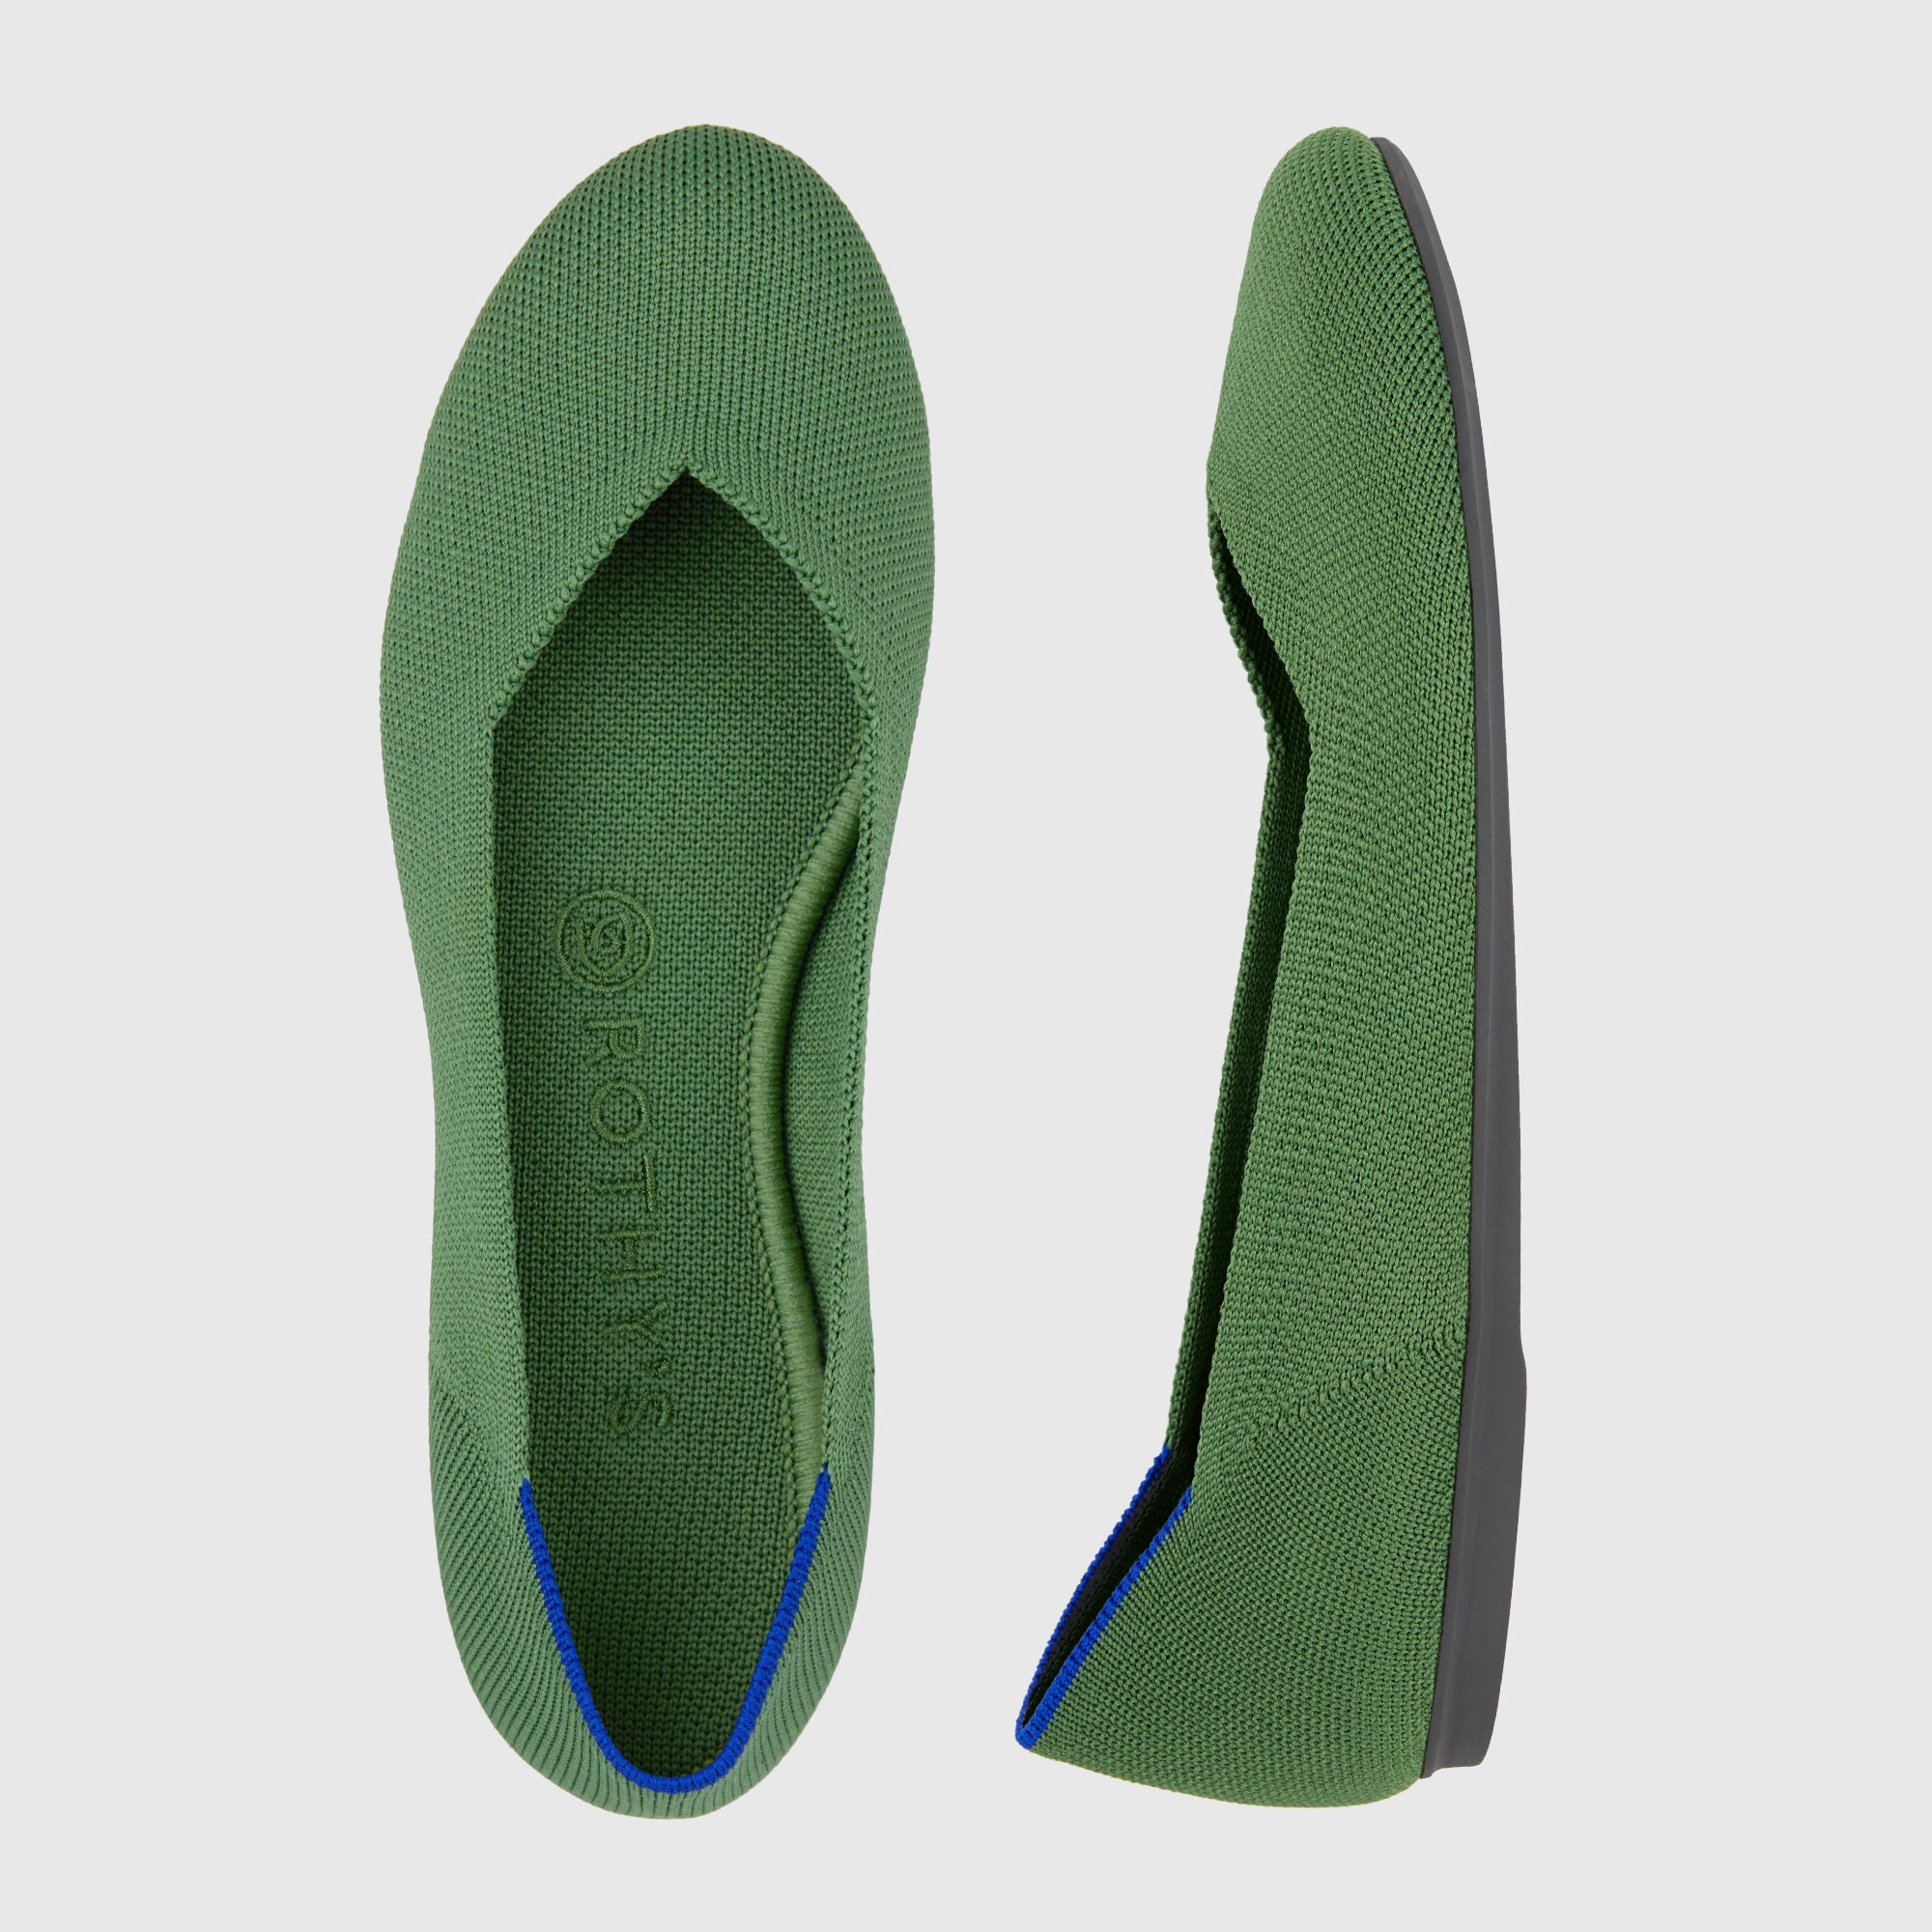 The Flat round toe shoe in Willow shown from the top alongside a side view showing the outsole.